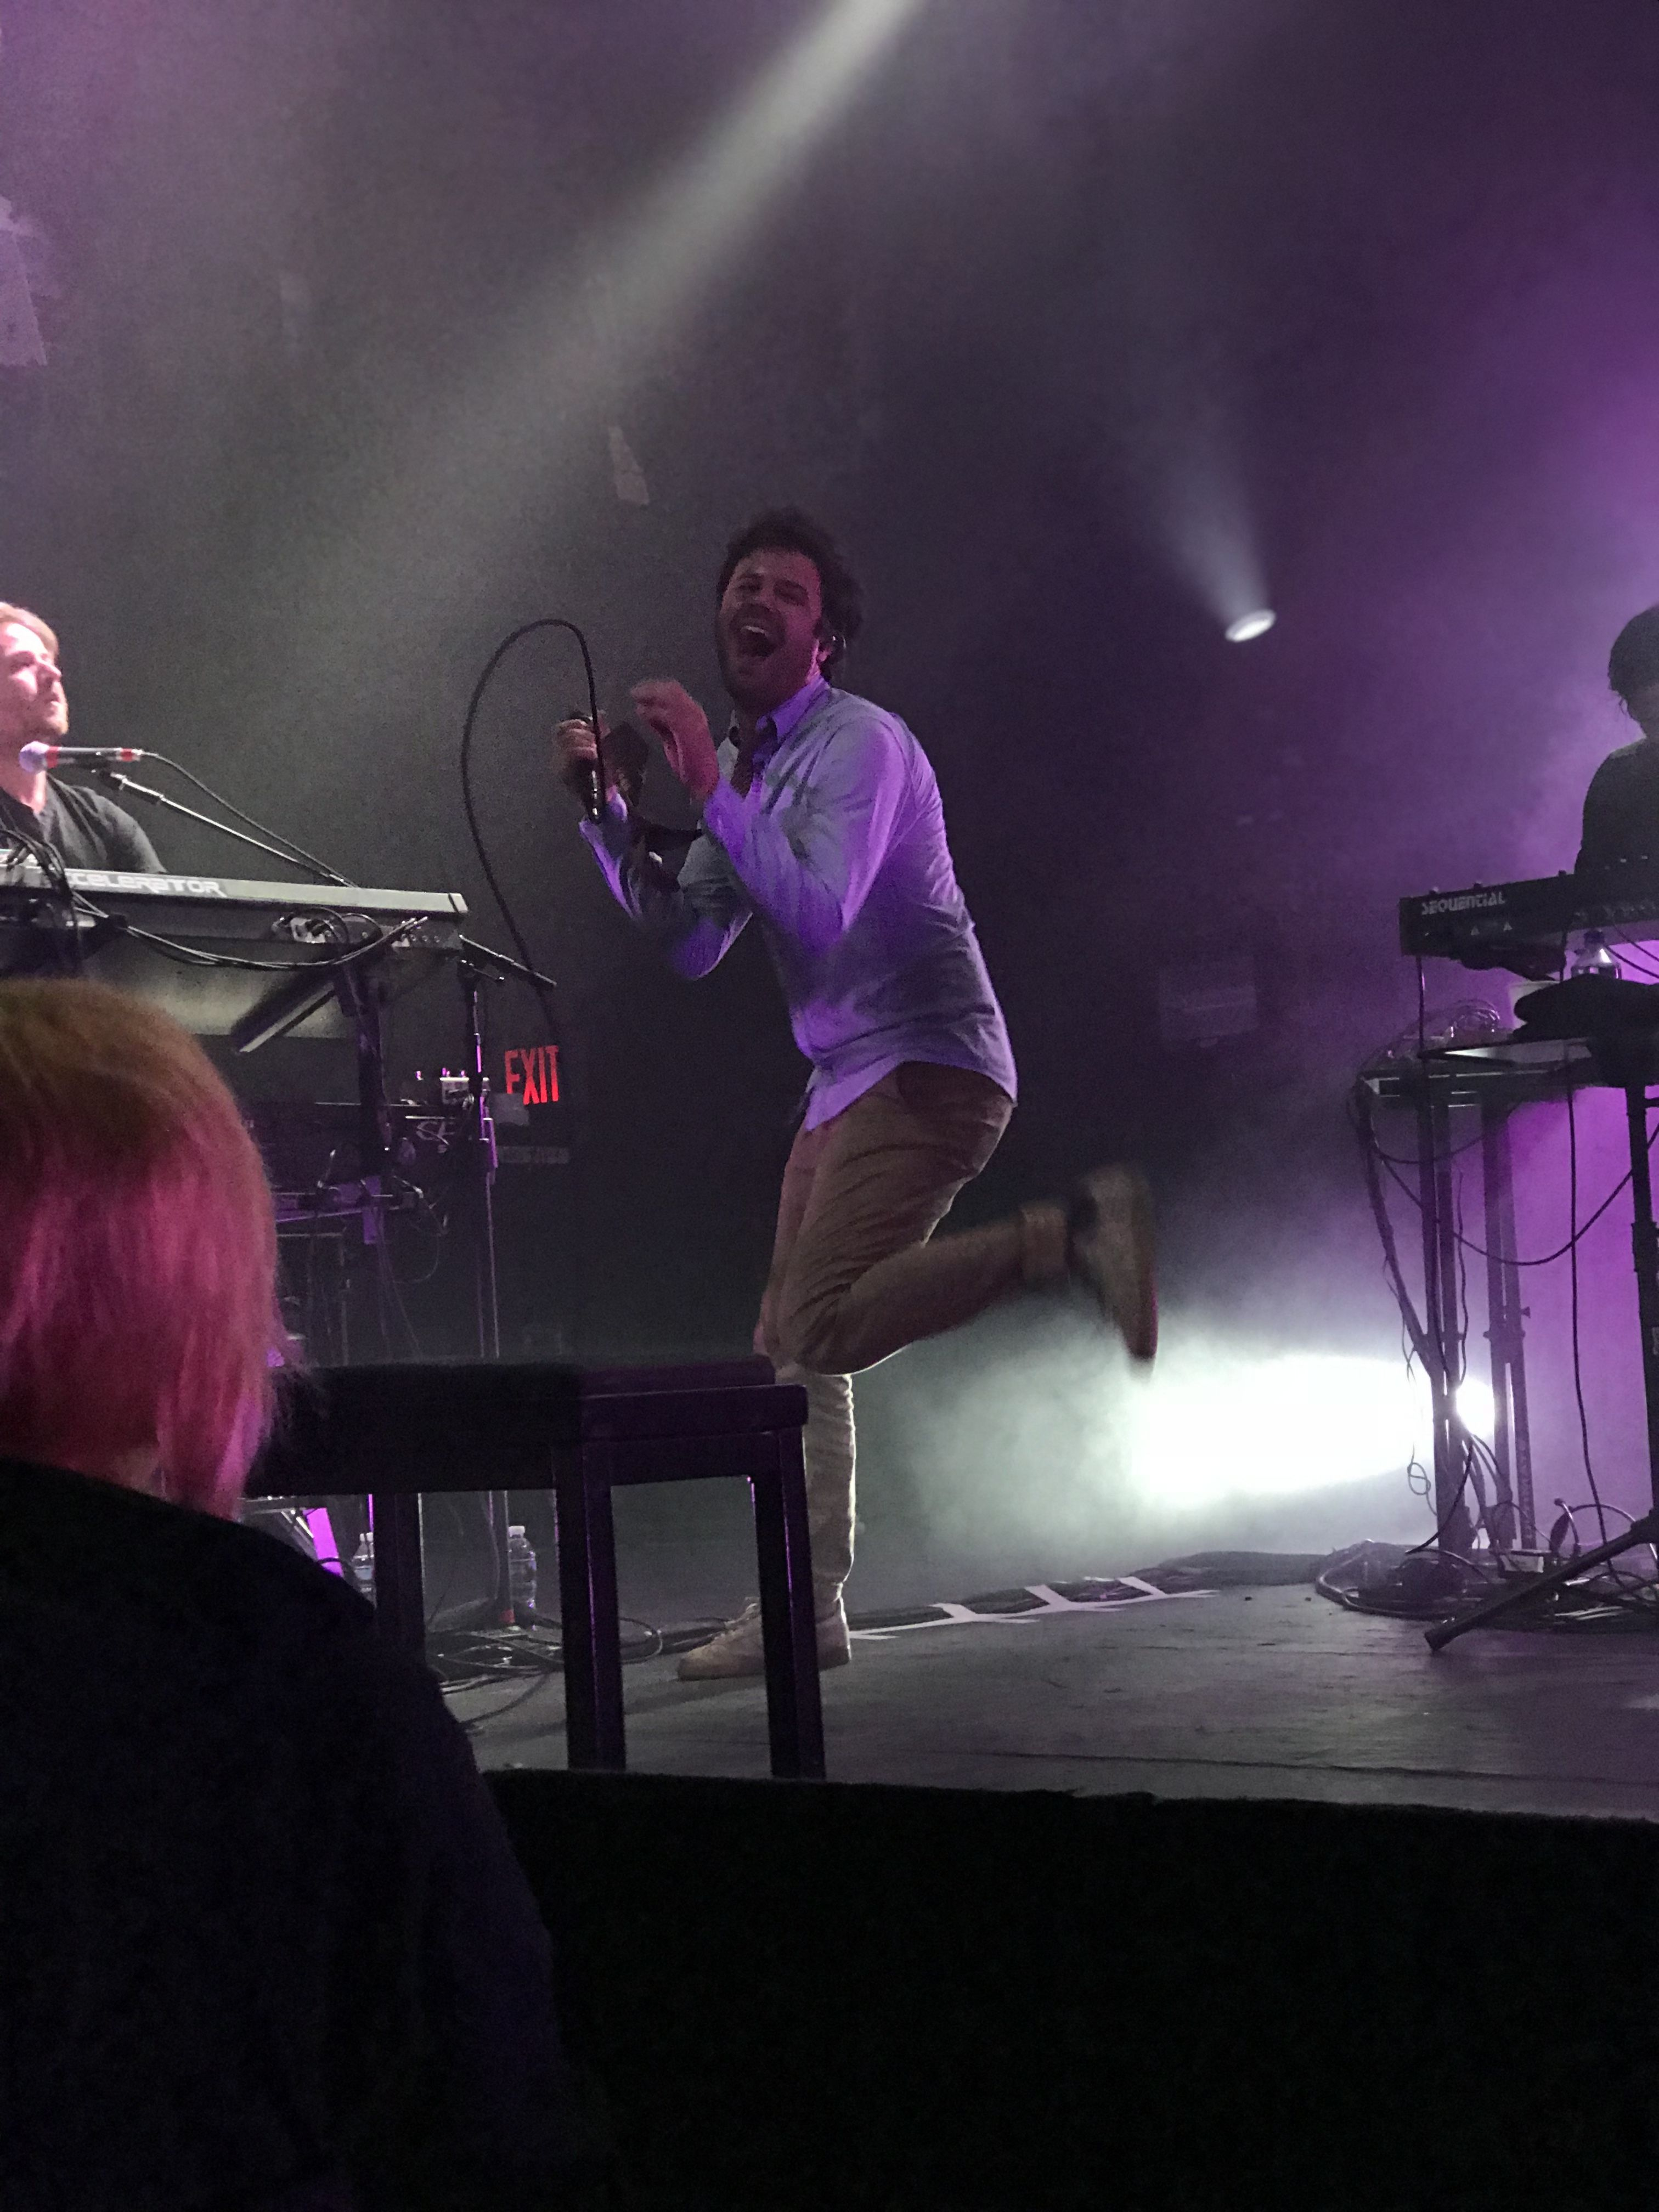 Pin by Prateek Chauhan on Passion pit in 2020 Passion